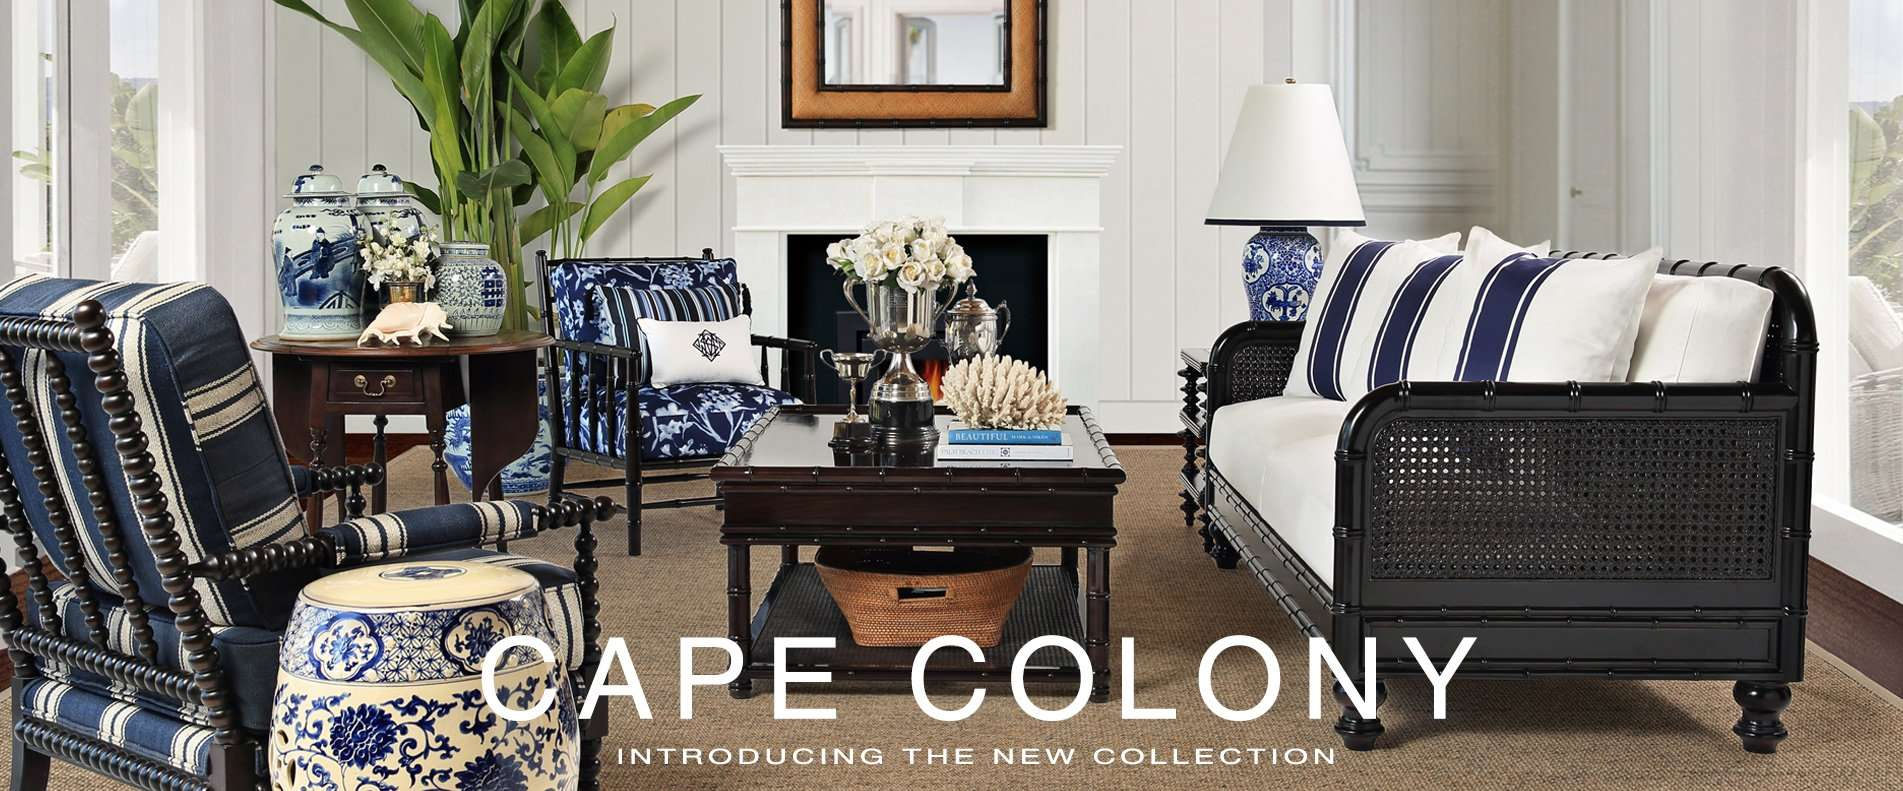 CAPE COLONY COLLECTION